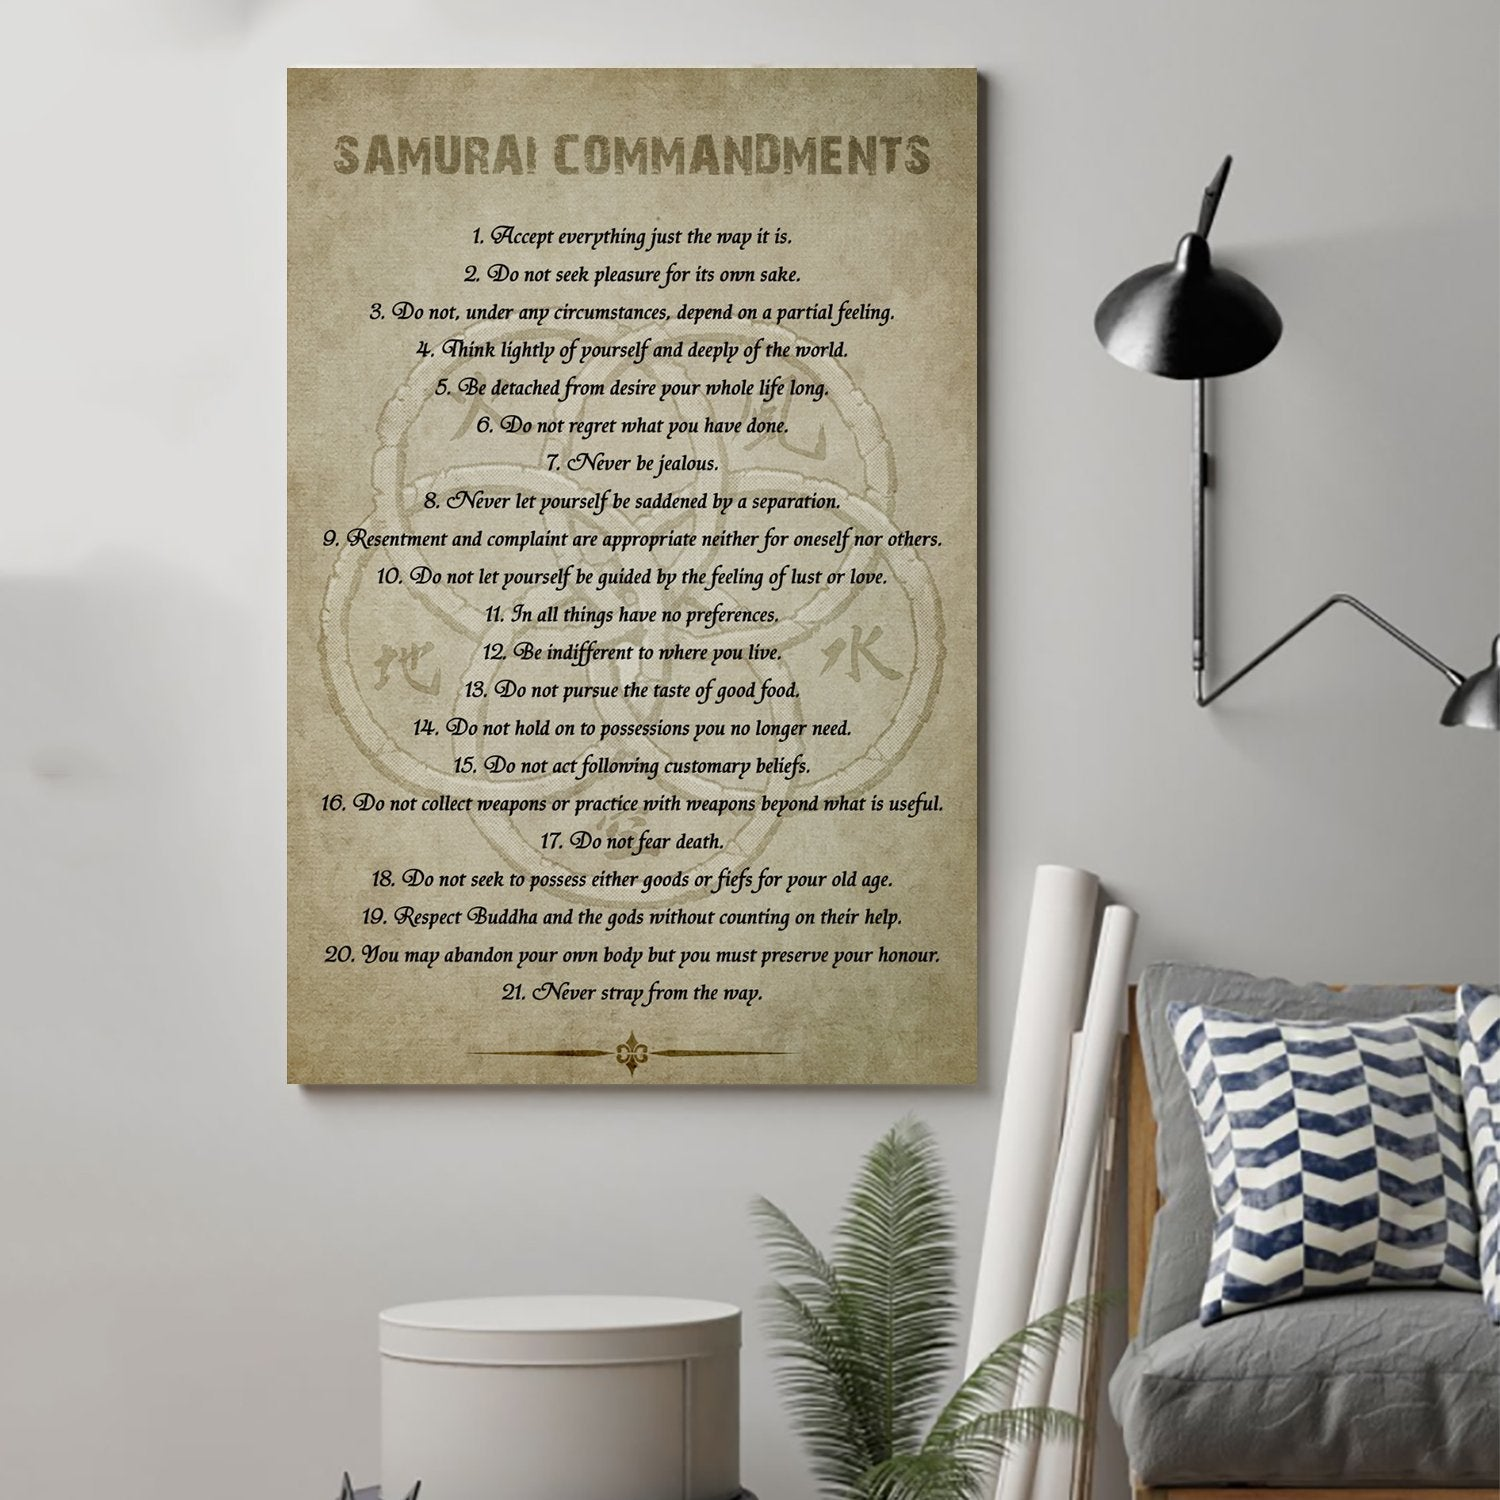 (cv34) Samurai Poster - Samurai commandments